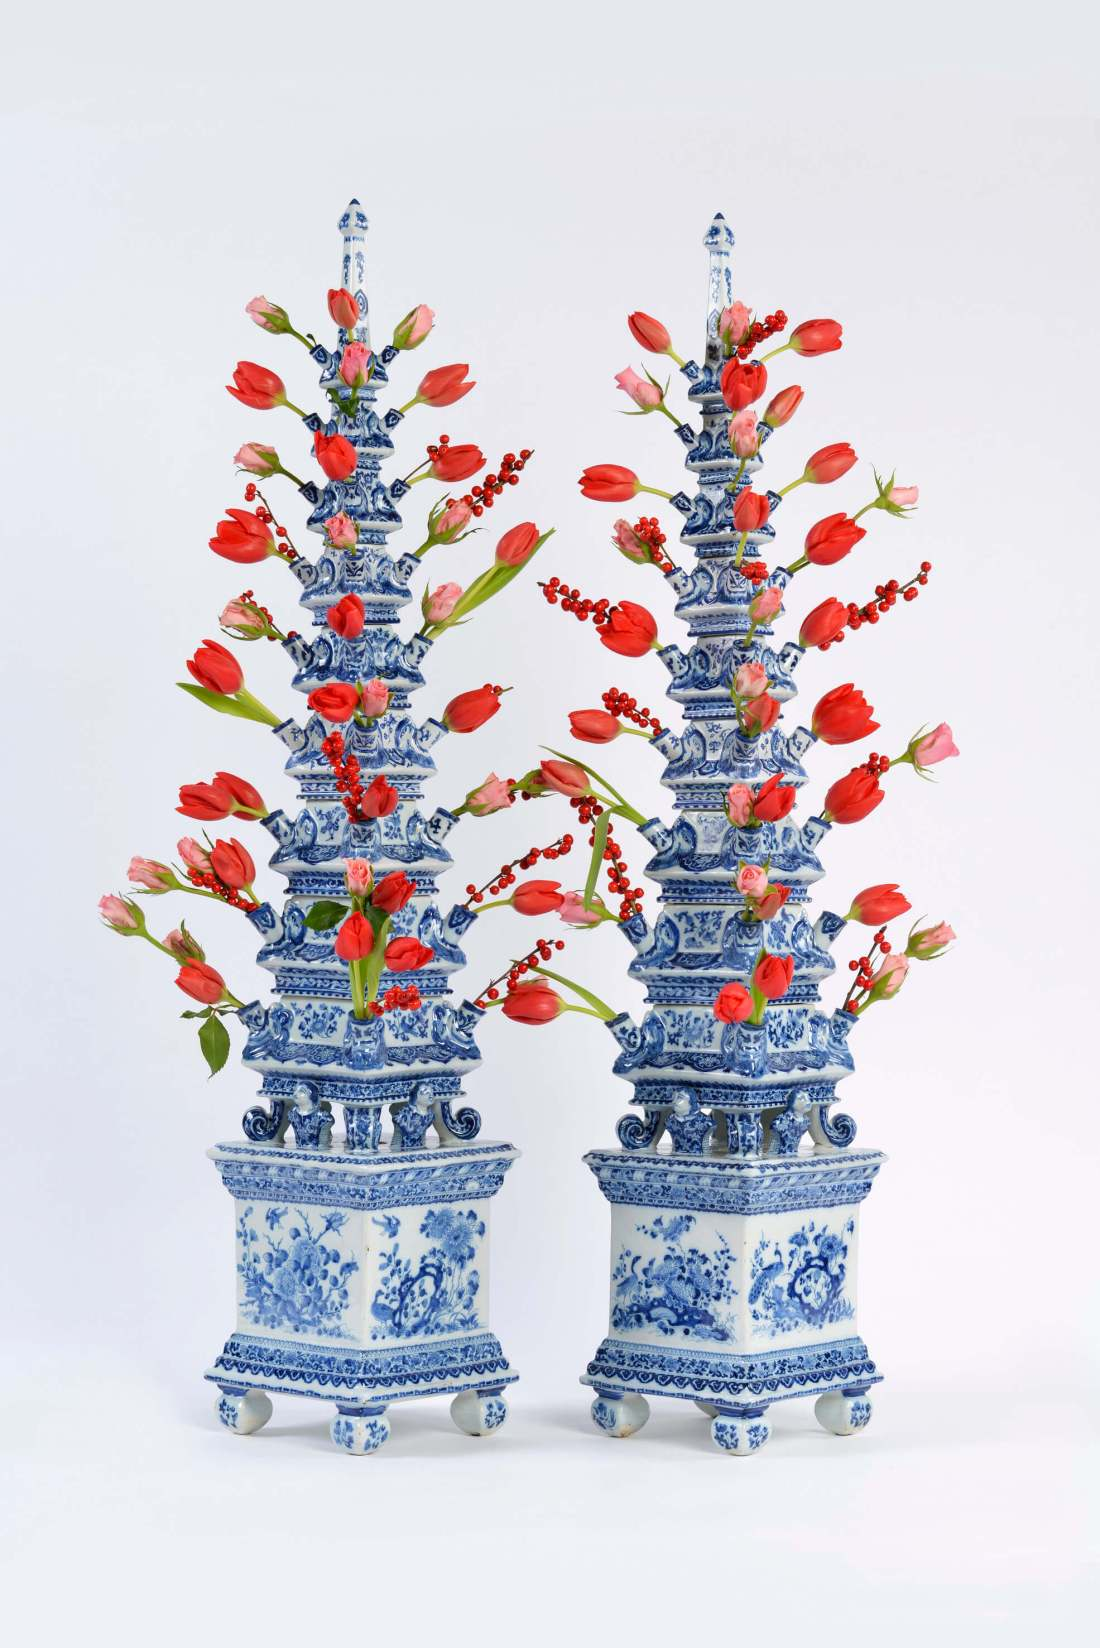 Tulipieres. Blue and white pyramidal flower vases. ca. 1695.